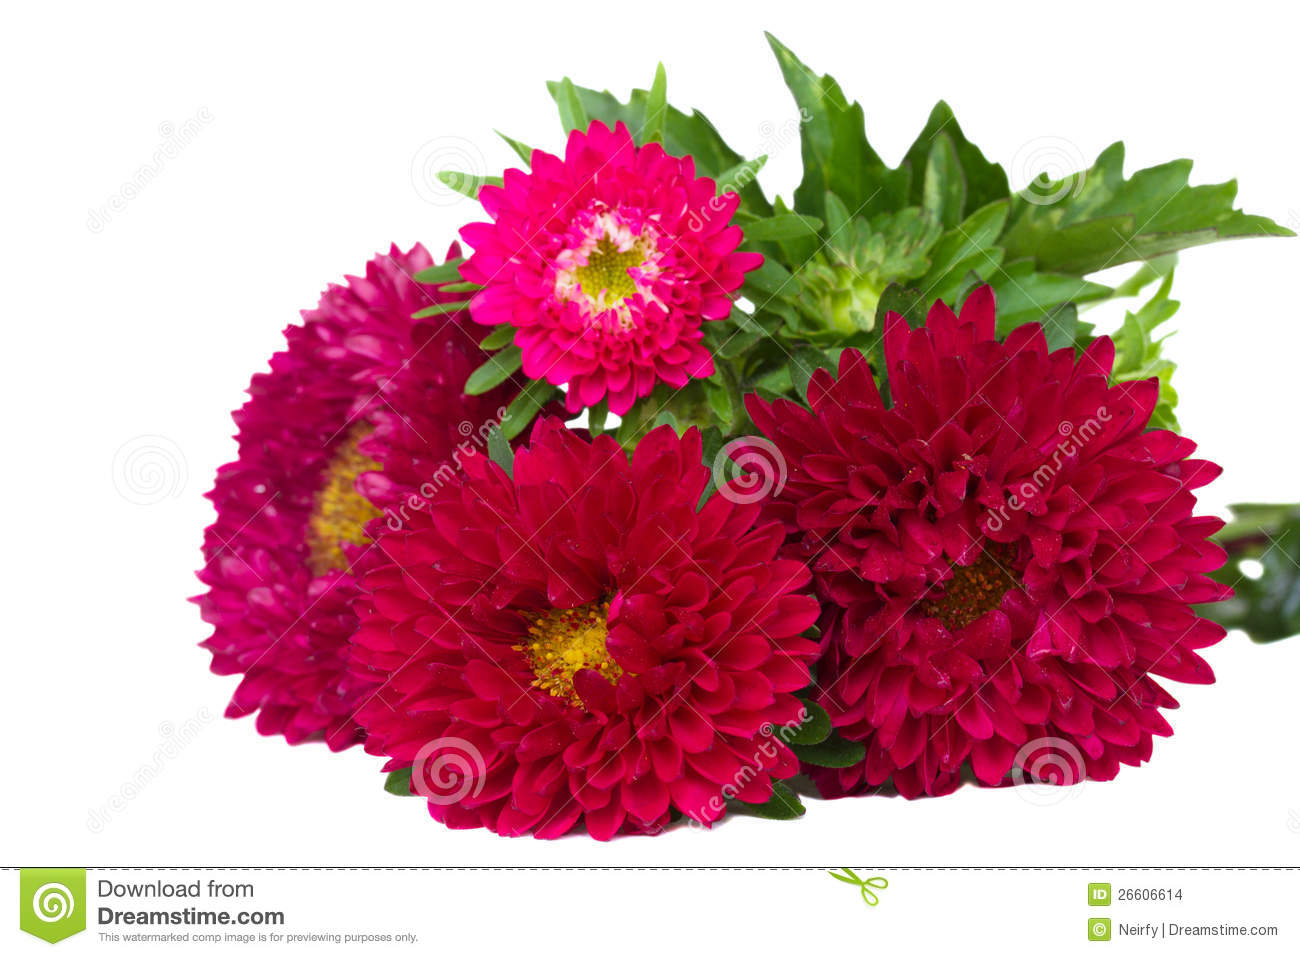 red aster flowers stock images  image, Beautiful flower